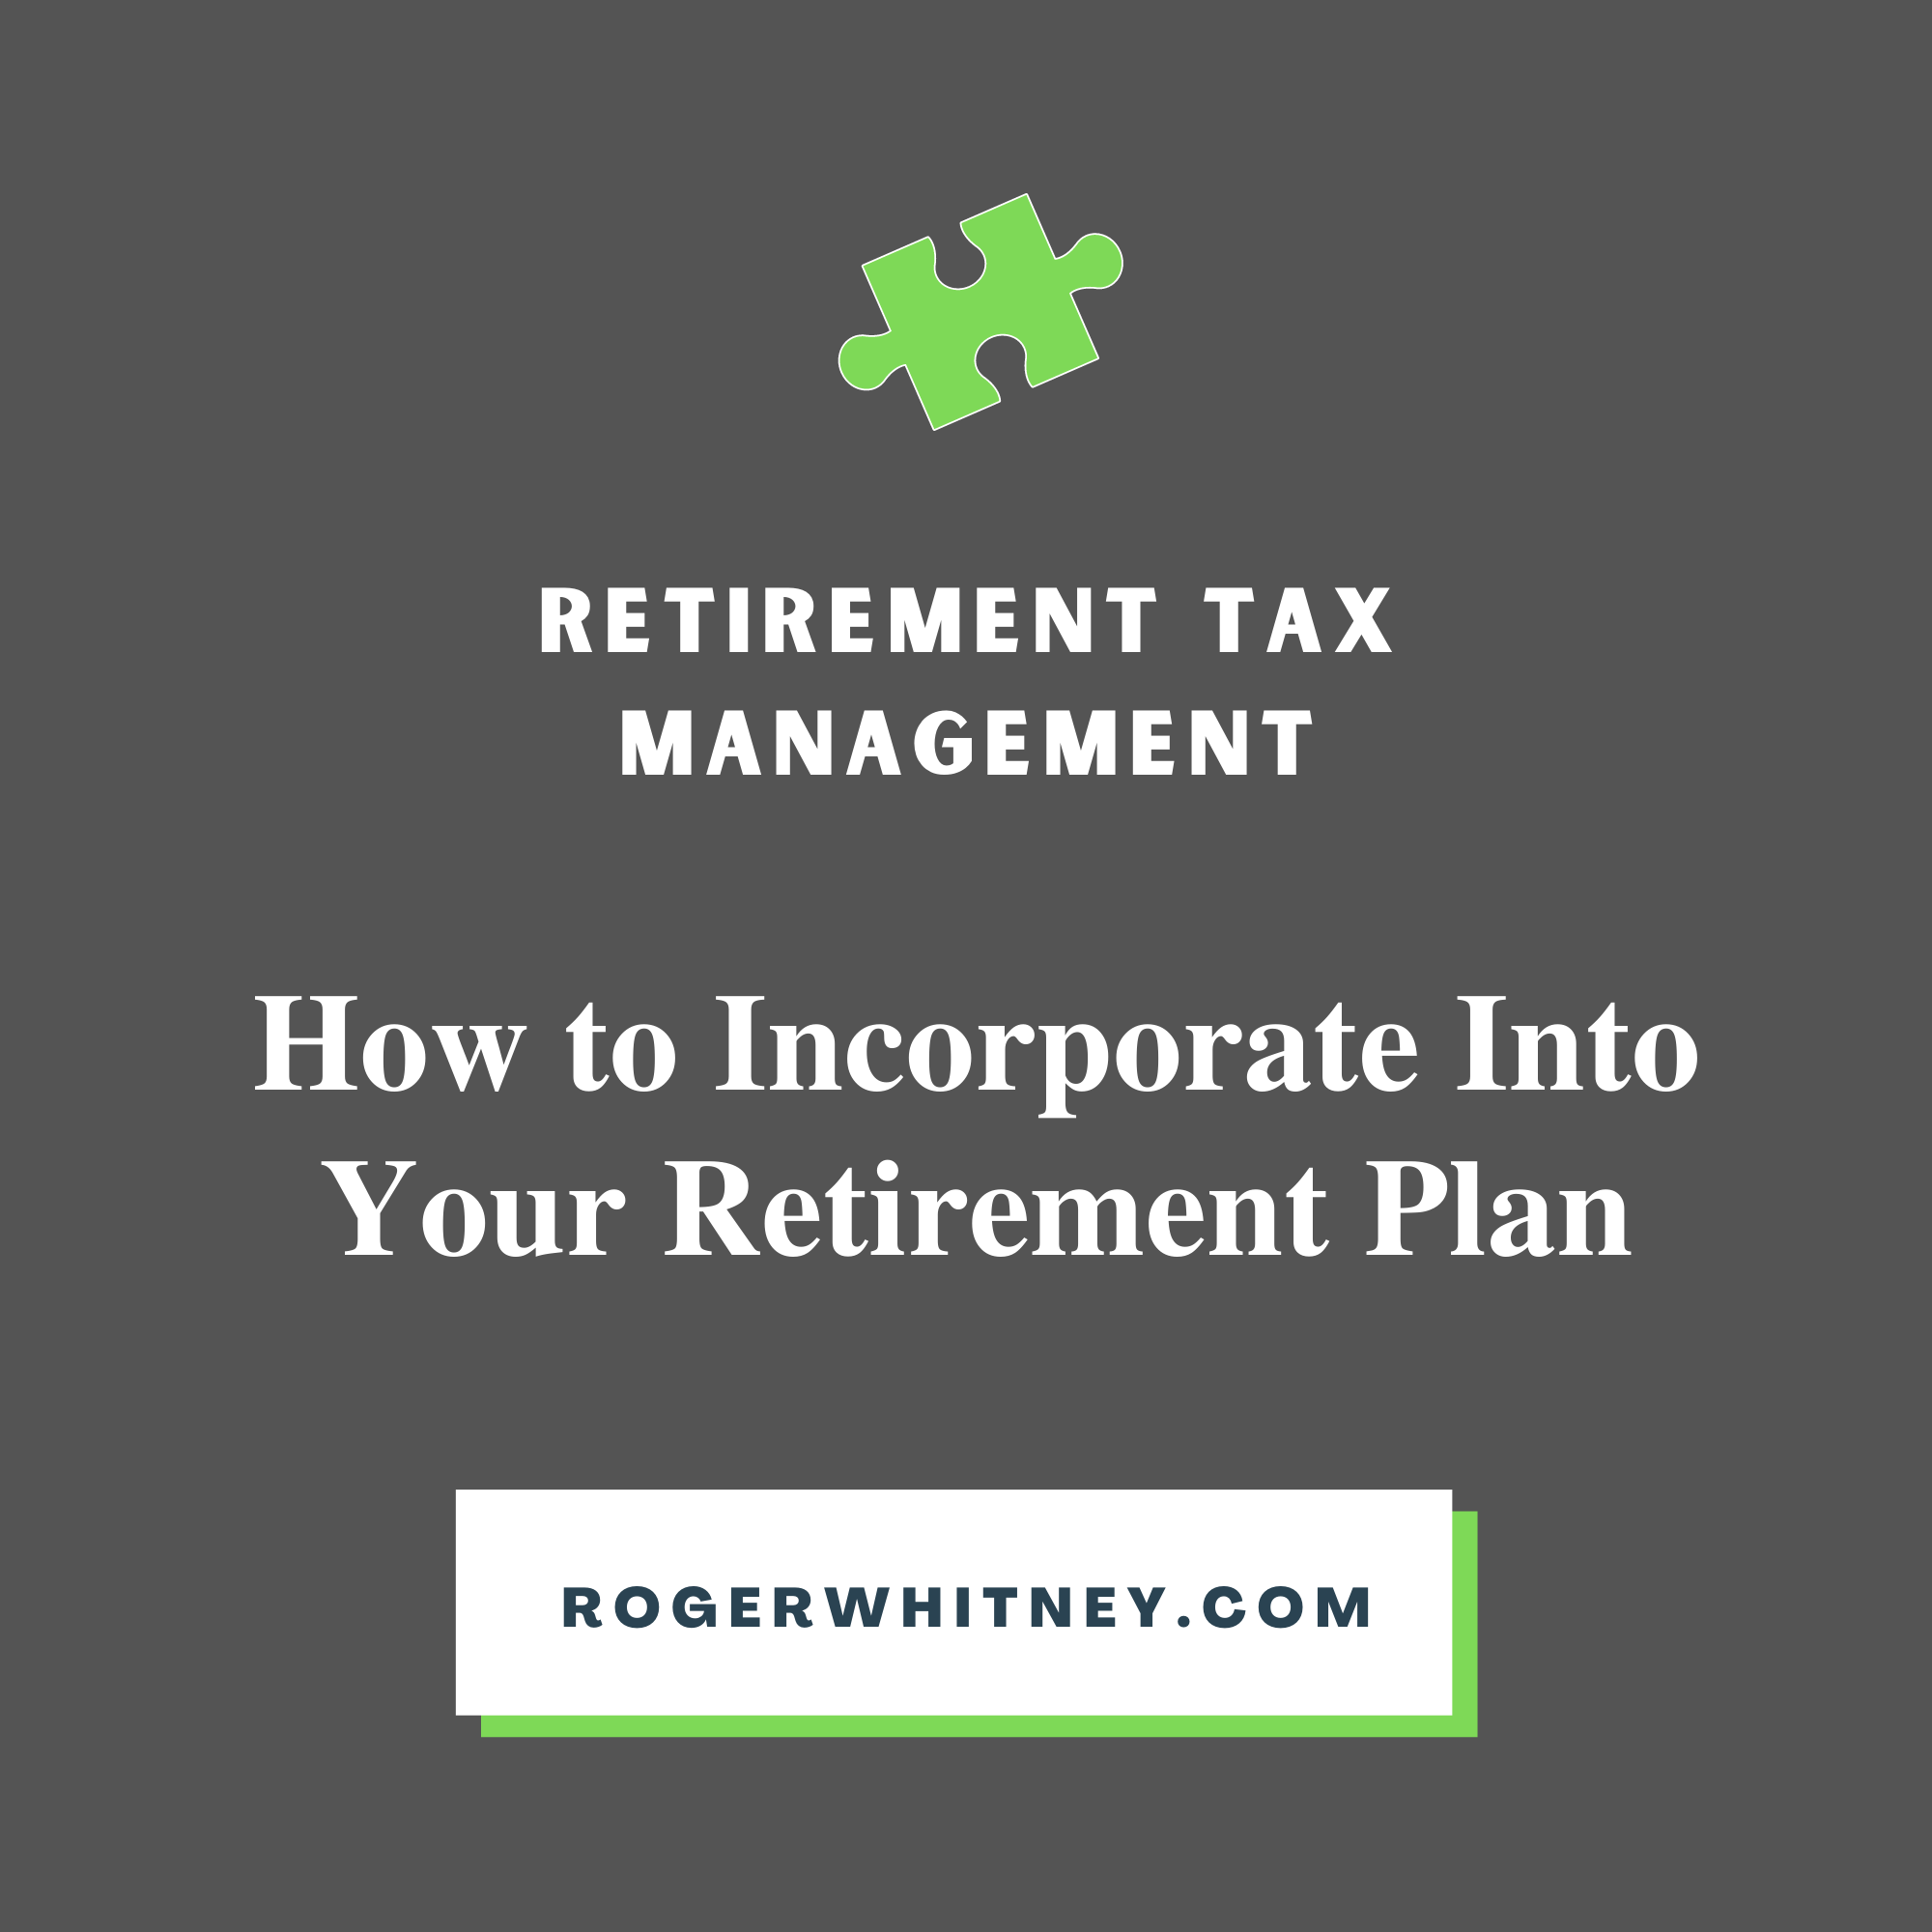 Retirement Tax Management: How to Incorporate into Your Retirement Plan